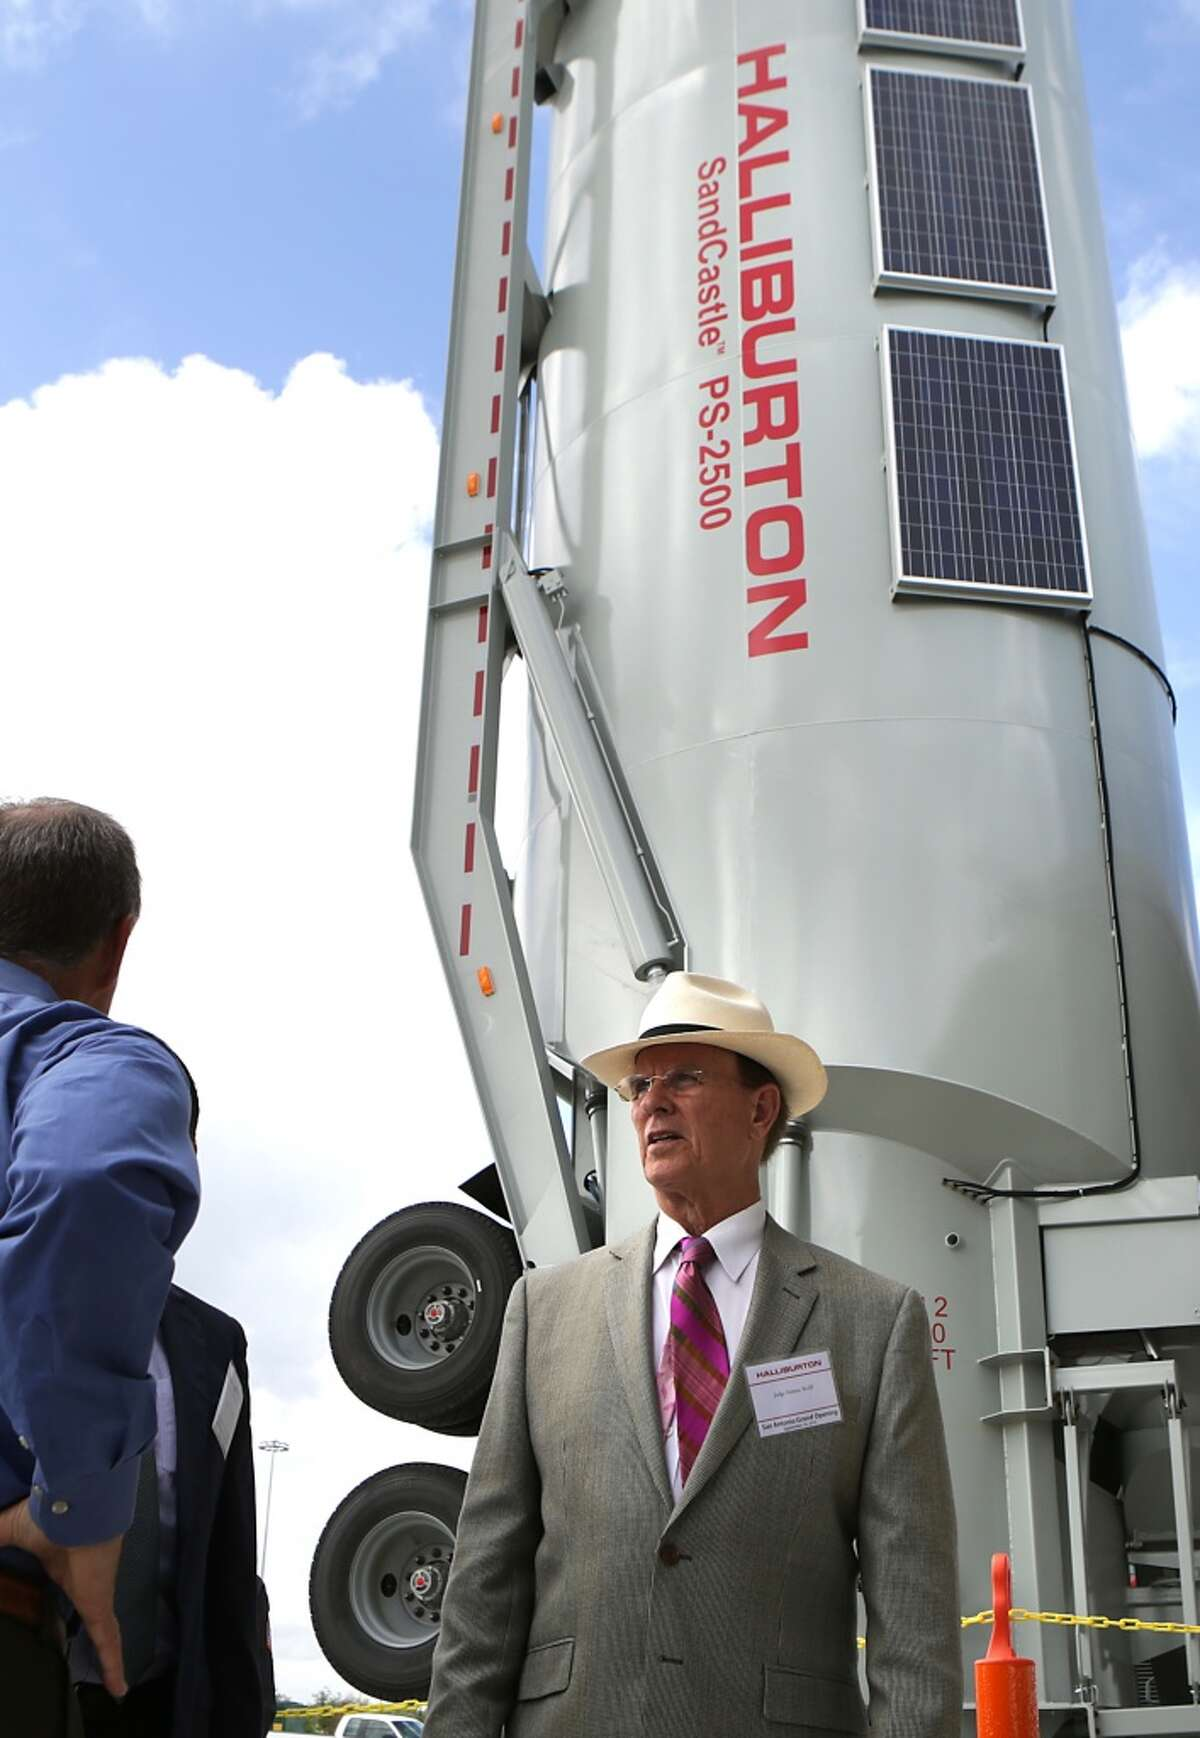 Oil field services giant Halliburton, headquartered in Houston, gives 90.2 percent of its political contributions to Republican candidates and committees. [Photo: Bexar County Judge Nelson Wolff arrives at Halliburton's San Antonio Operations Center for its grand opening in September 2013.]